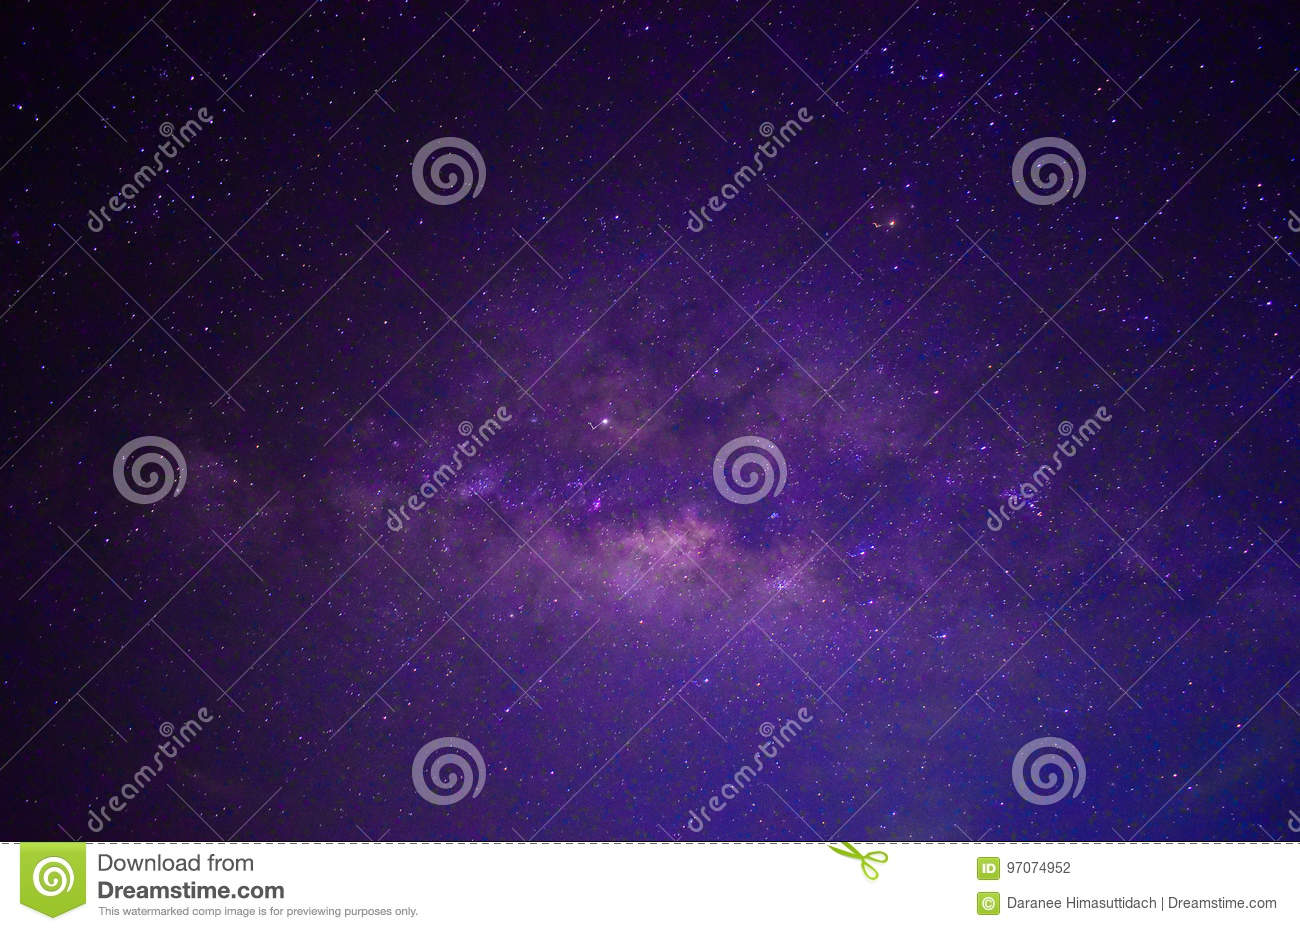 Star of the galaxy Sky Night Background